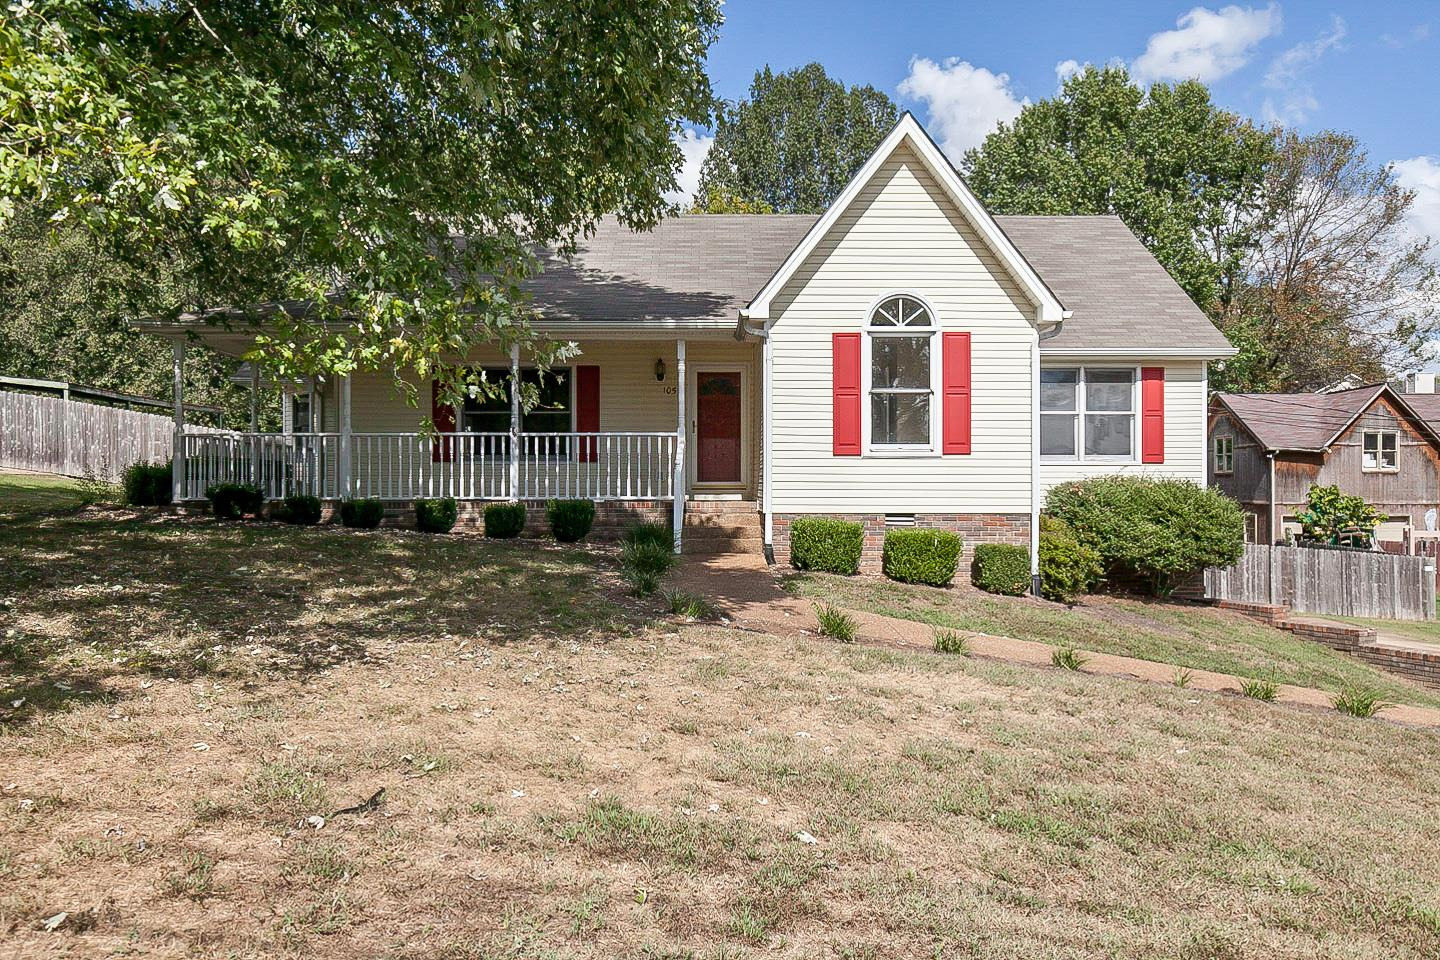 105 Elliott Ct 38401 - One of Columbia Homes for Sale